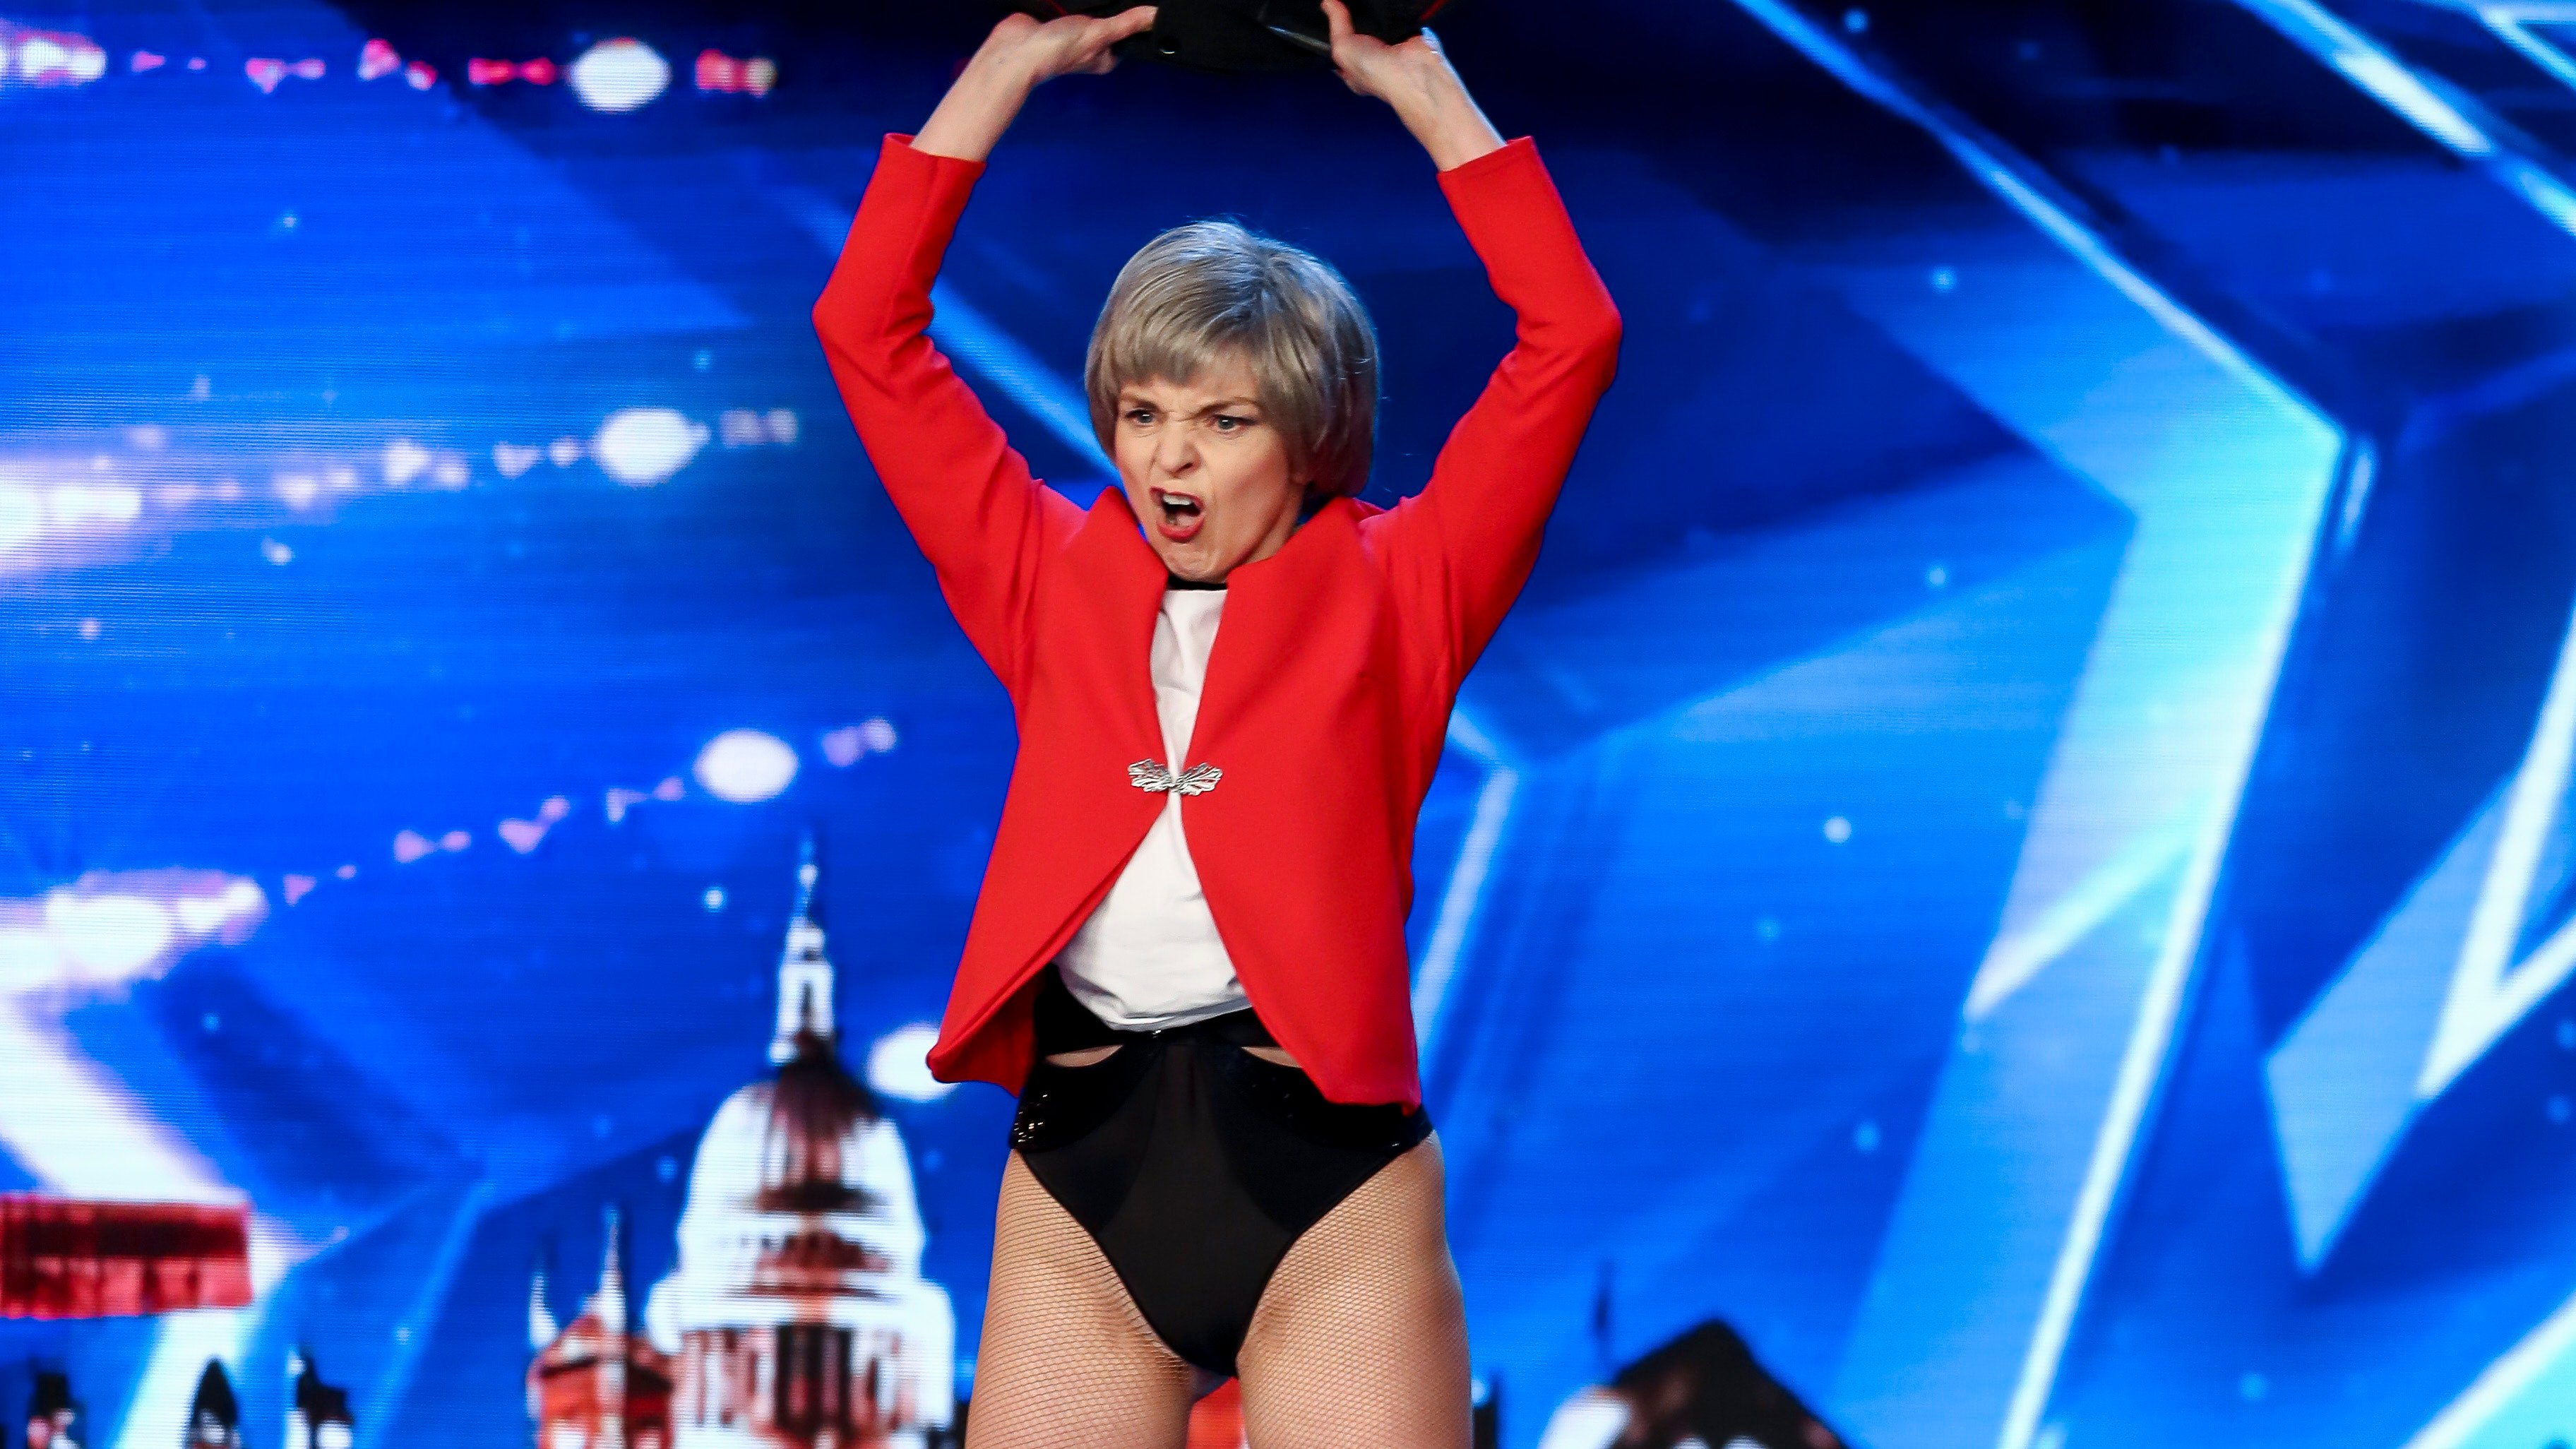 Everyone is making the same joke about Theresa May lookalike on BGT